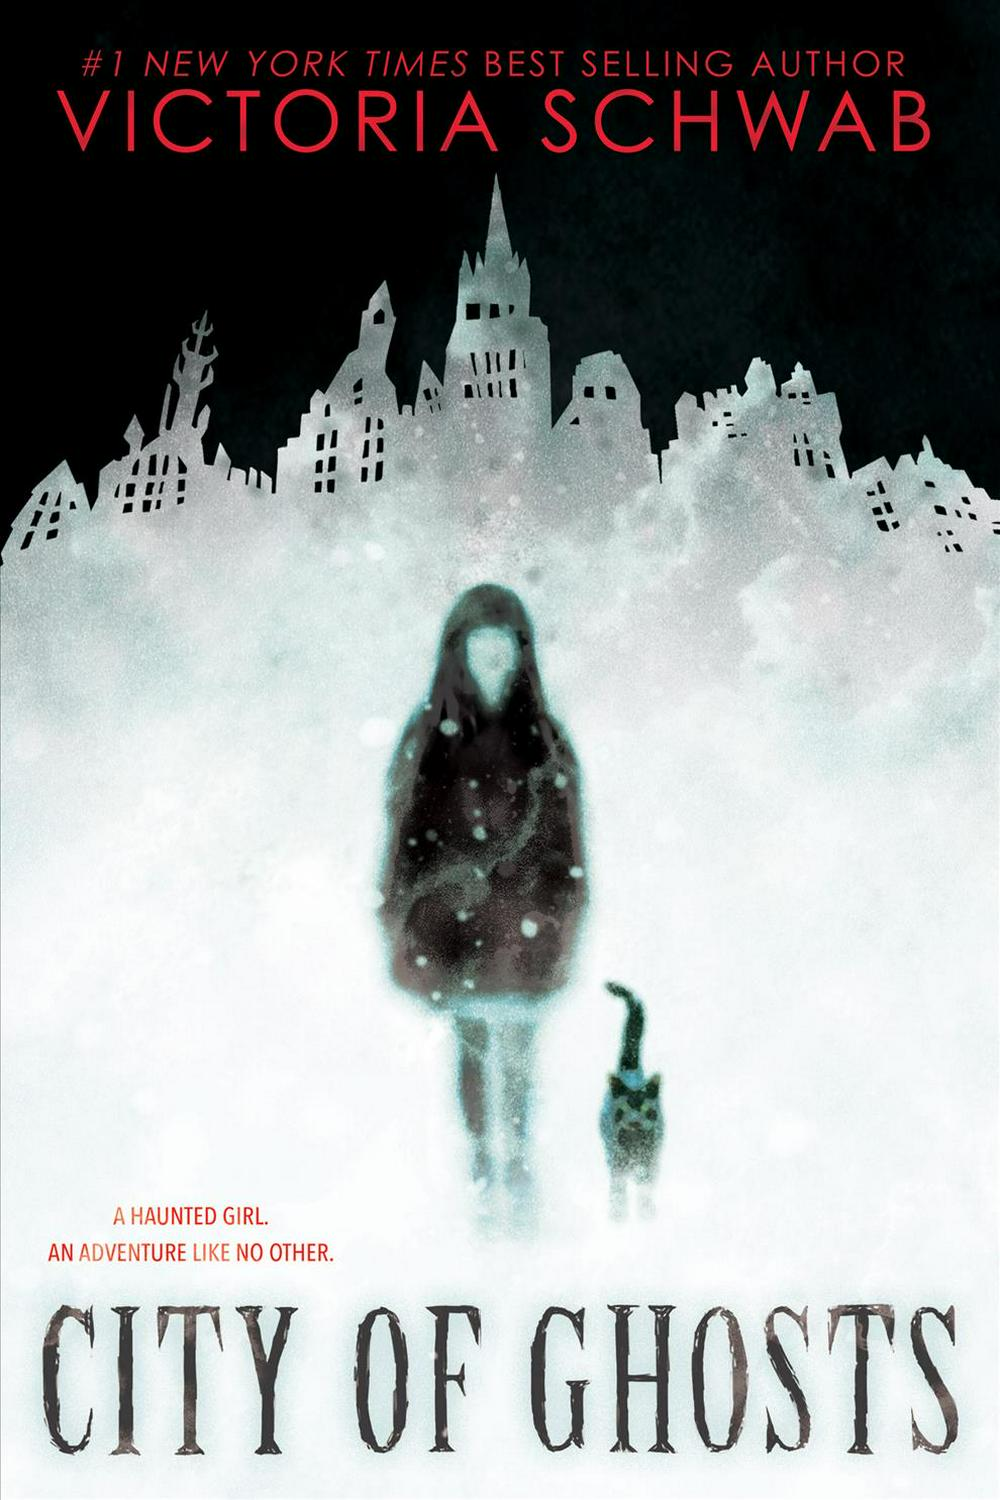 City of Ghosts by Victoria Schwab, ISBN: 9781338111002